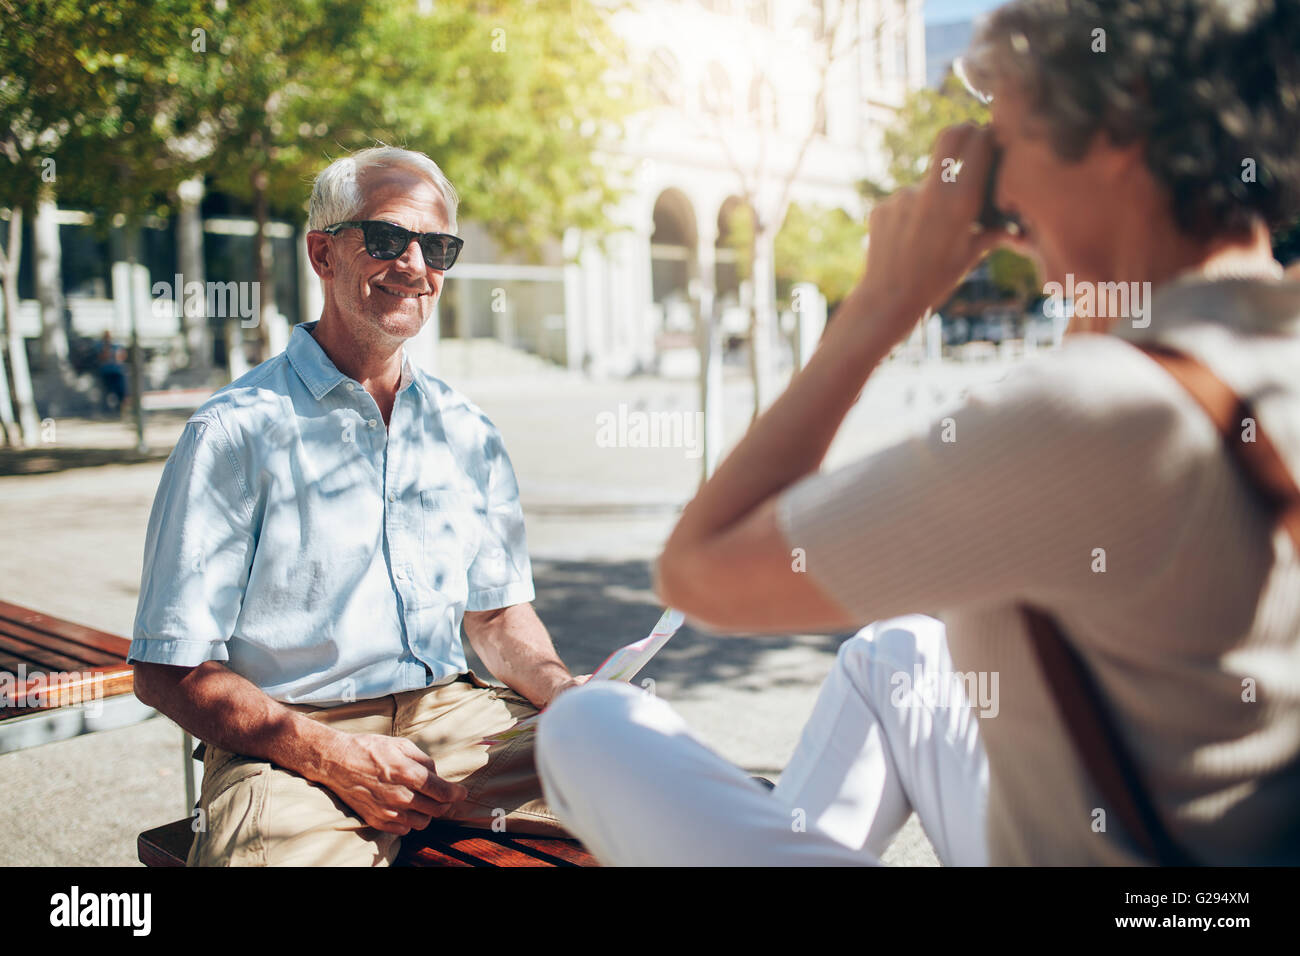 Handsome senior man being photographed by his wife. Senior tourist talking photos with camera outdoors in the city. - Stock Image